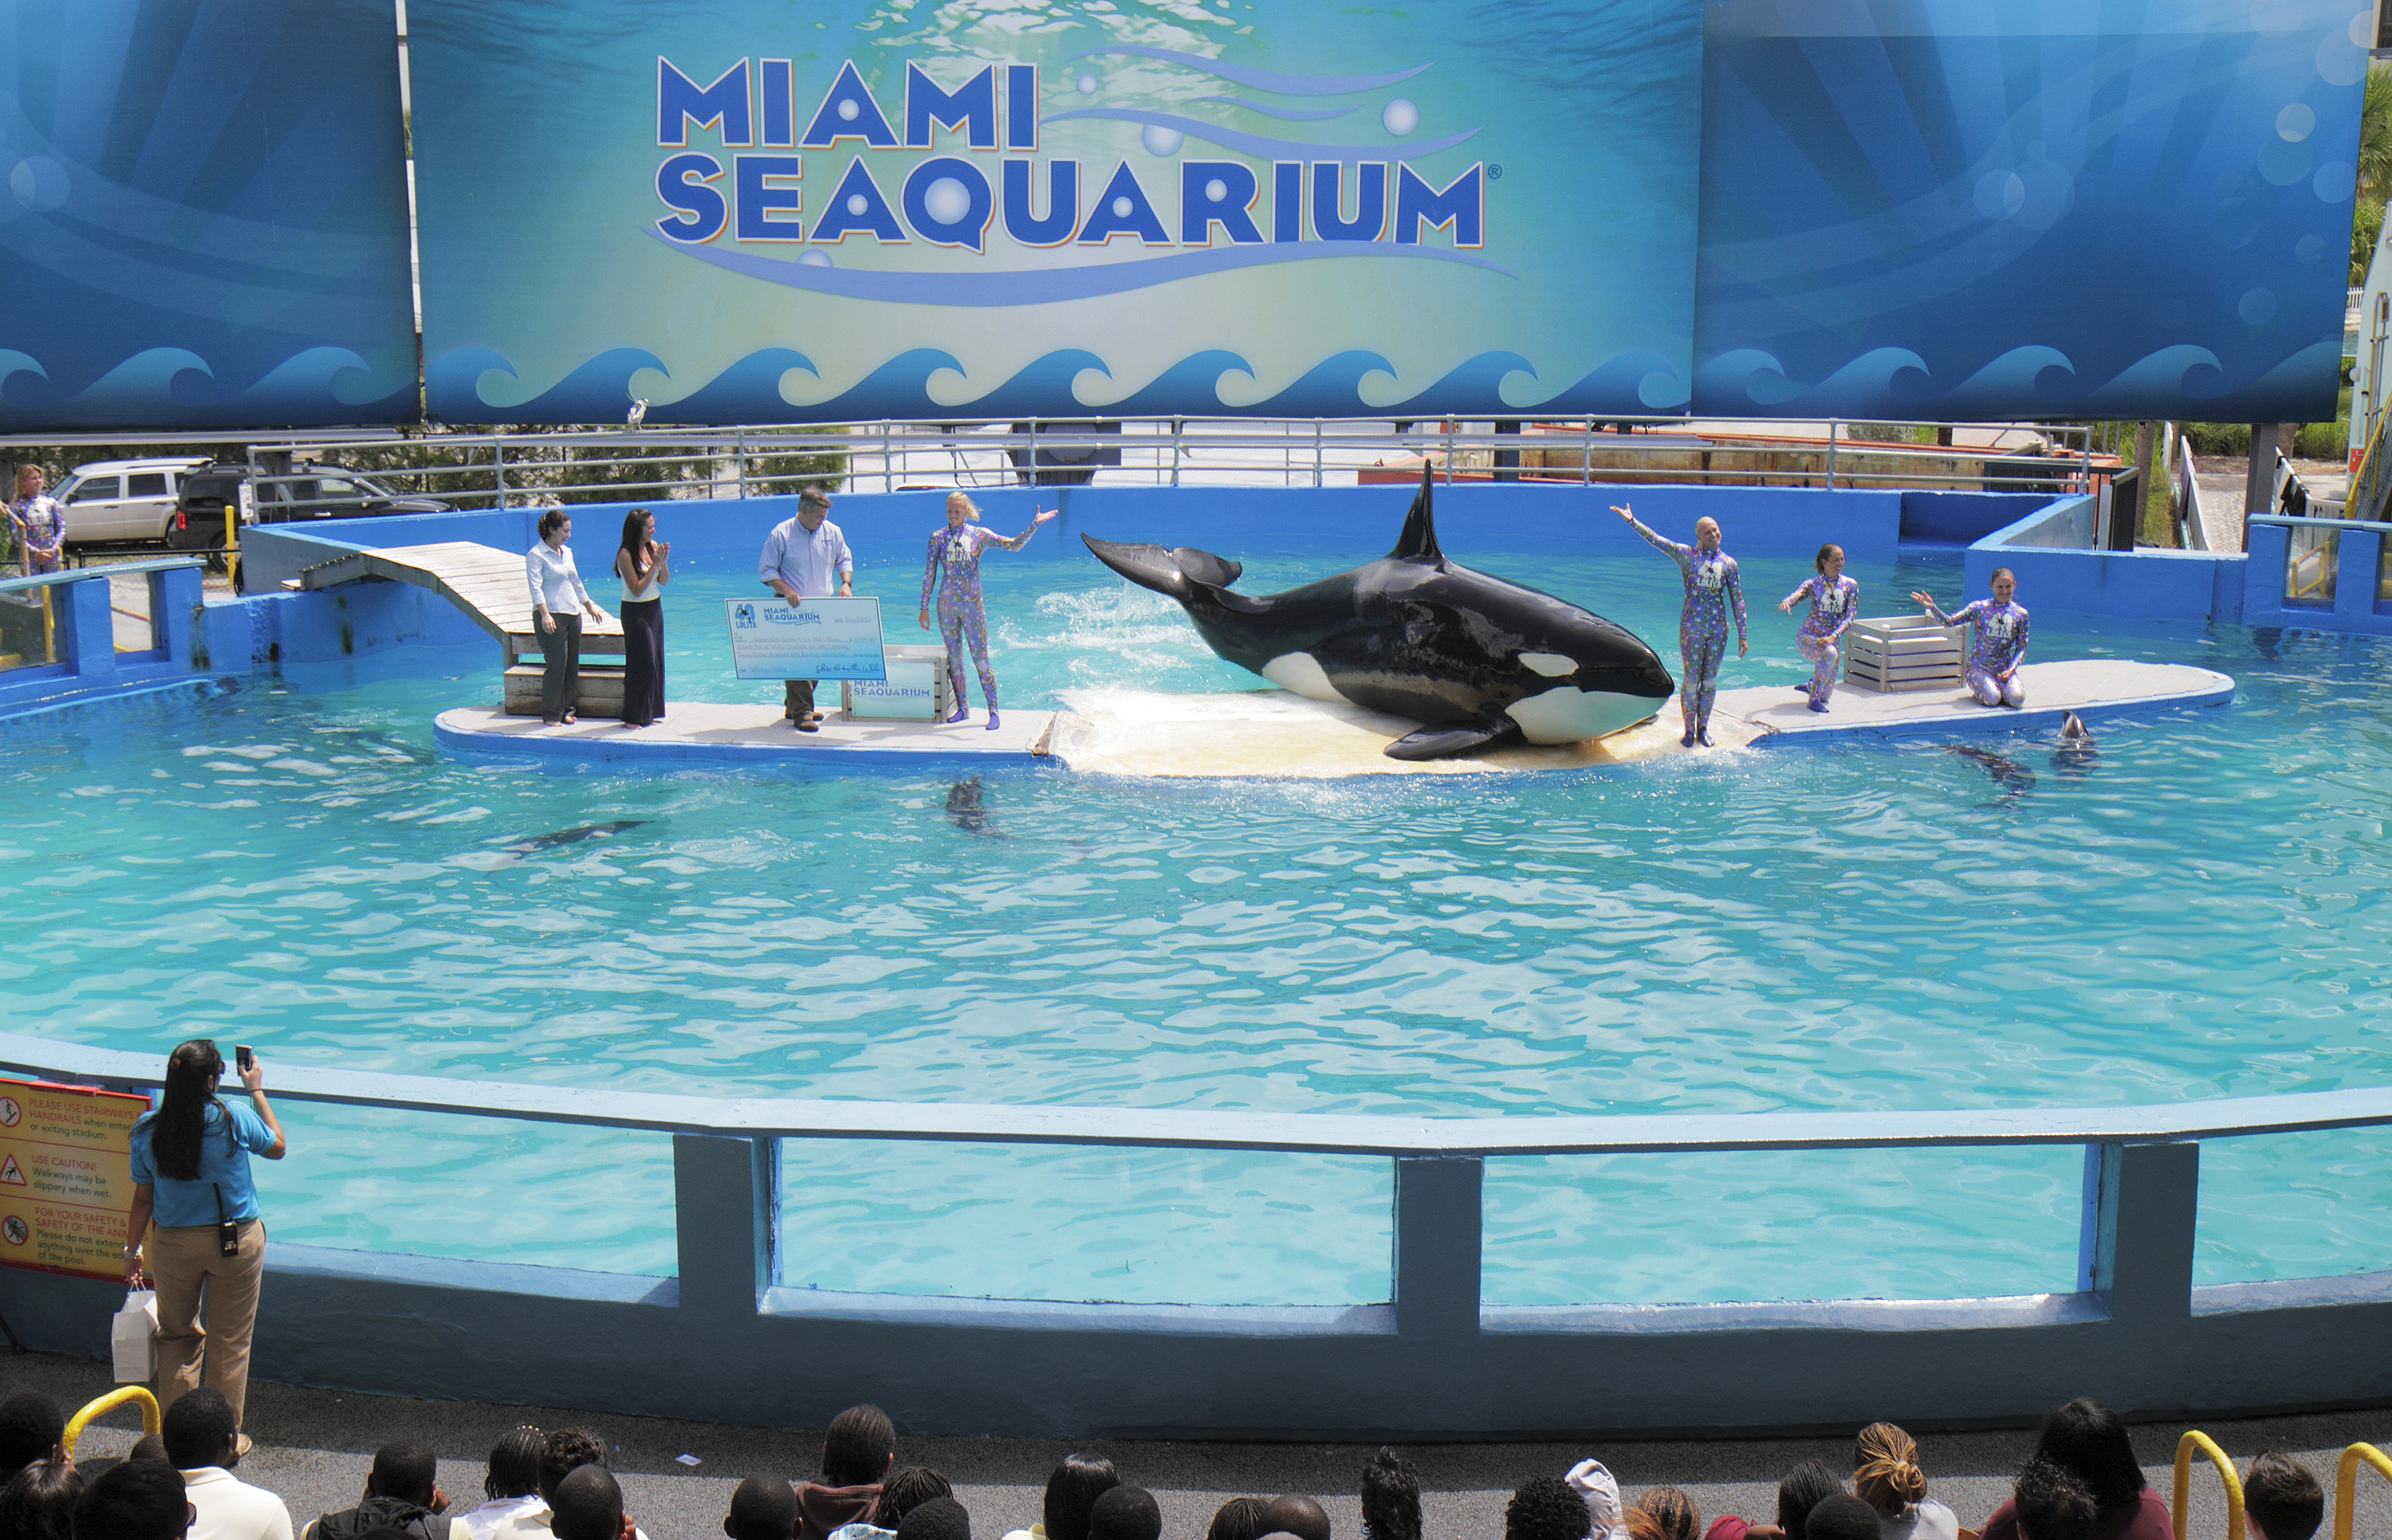 Lolita the killer whale may never go free. And that could be what's best for her, scientists say